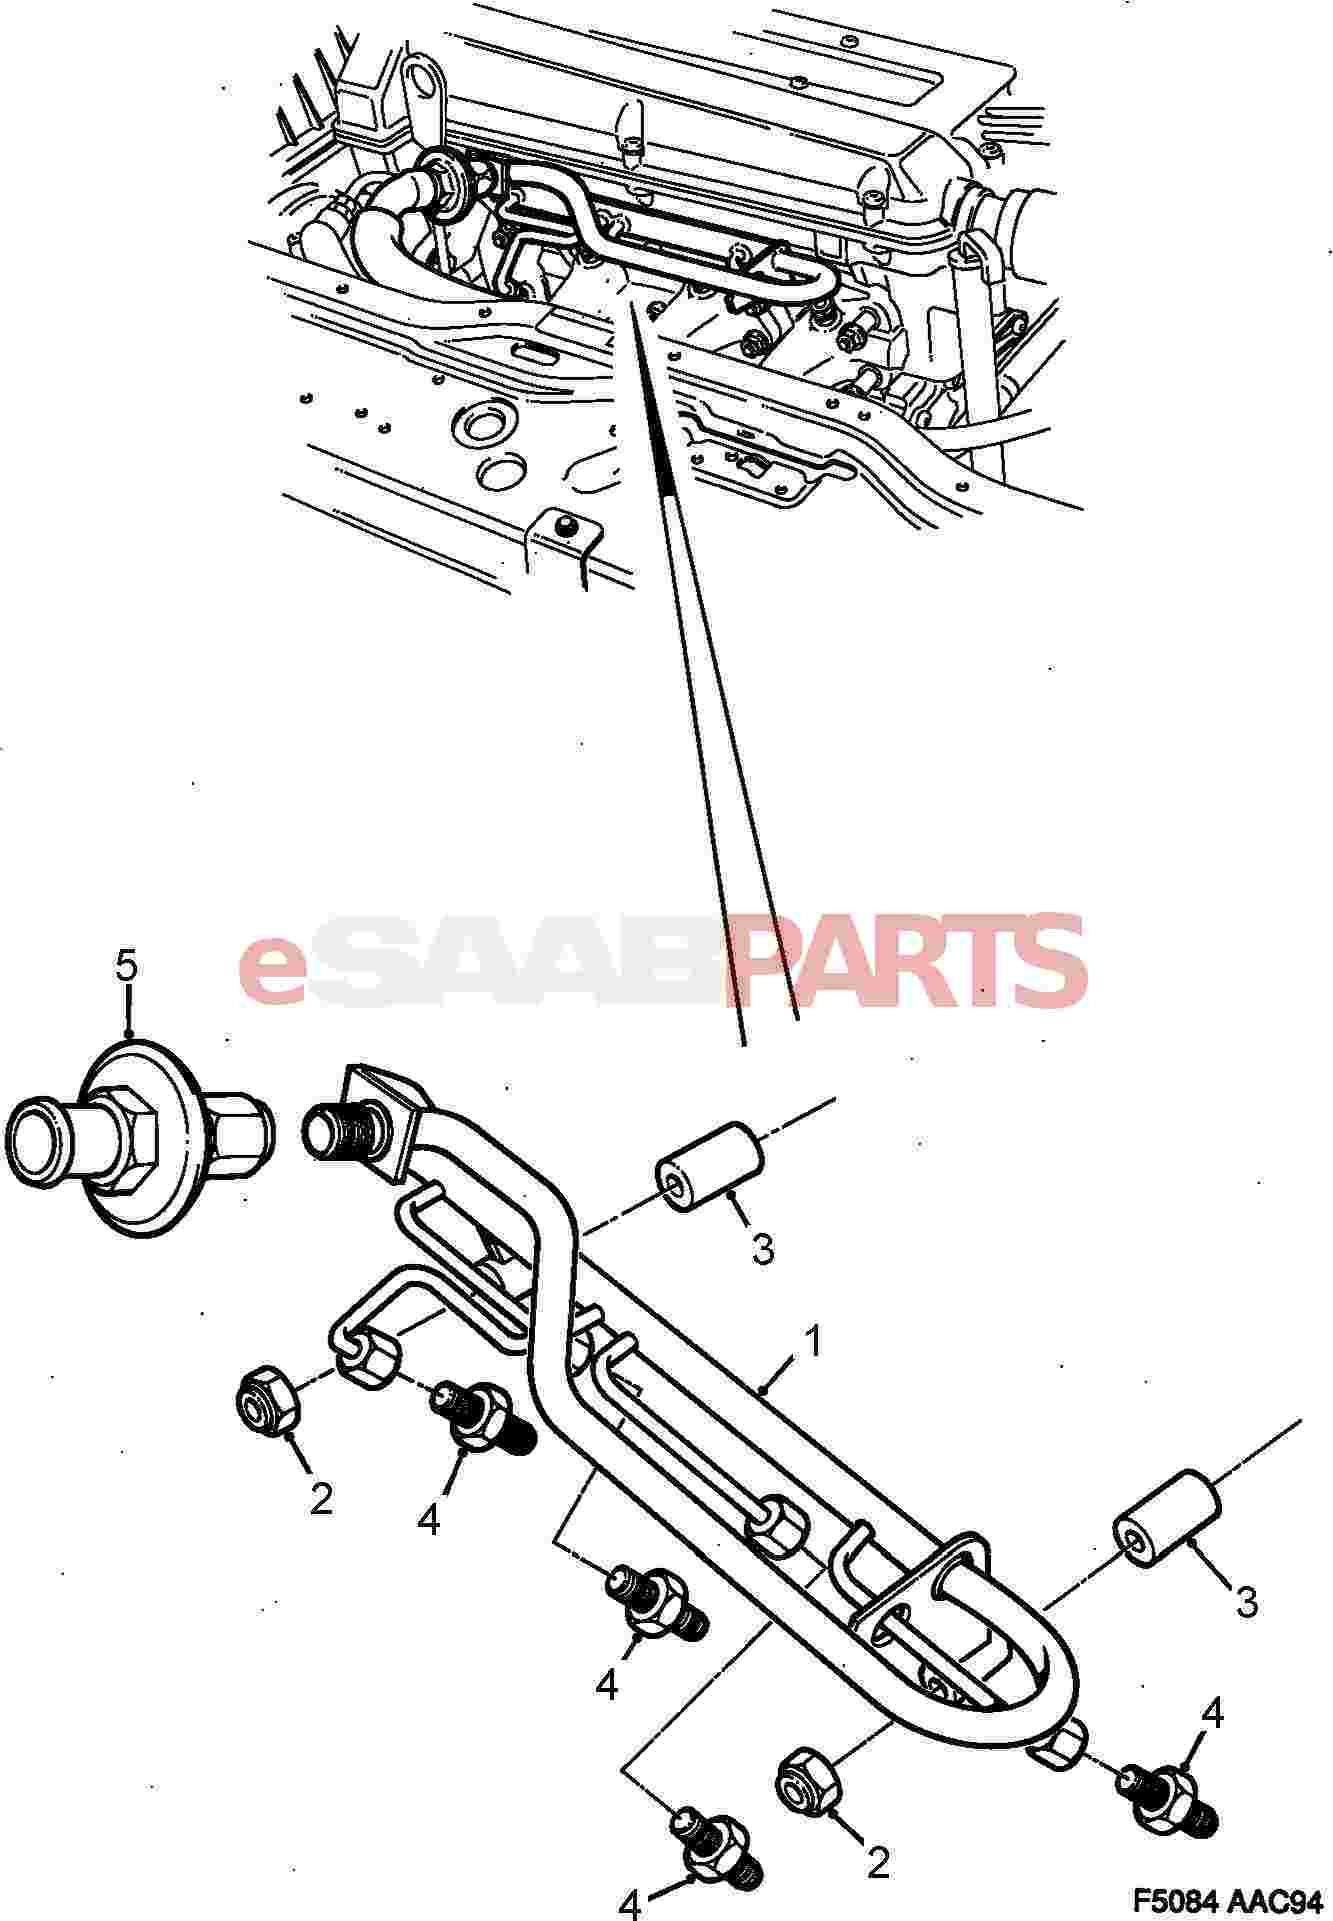 Cadillac Dts Engine Diagram Wiring Diagrams. Cadillac